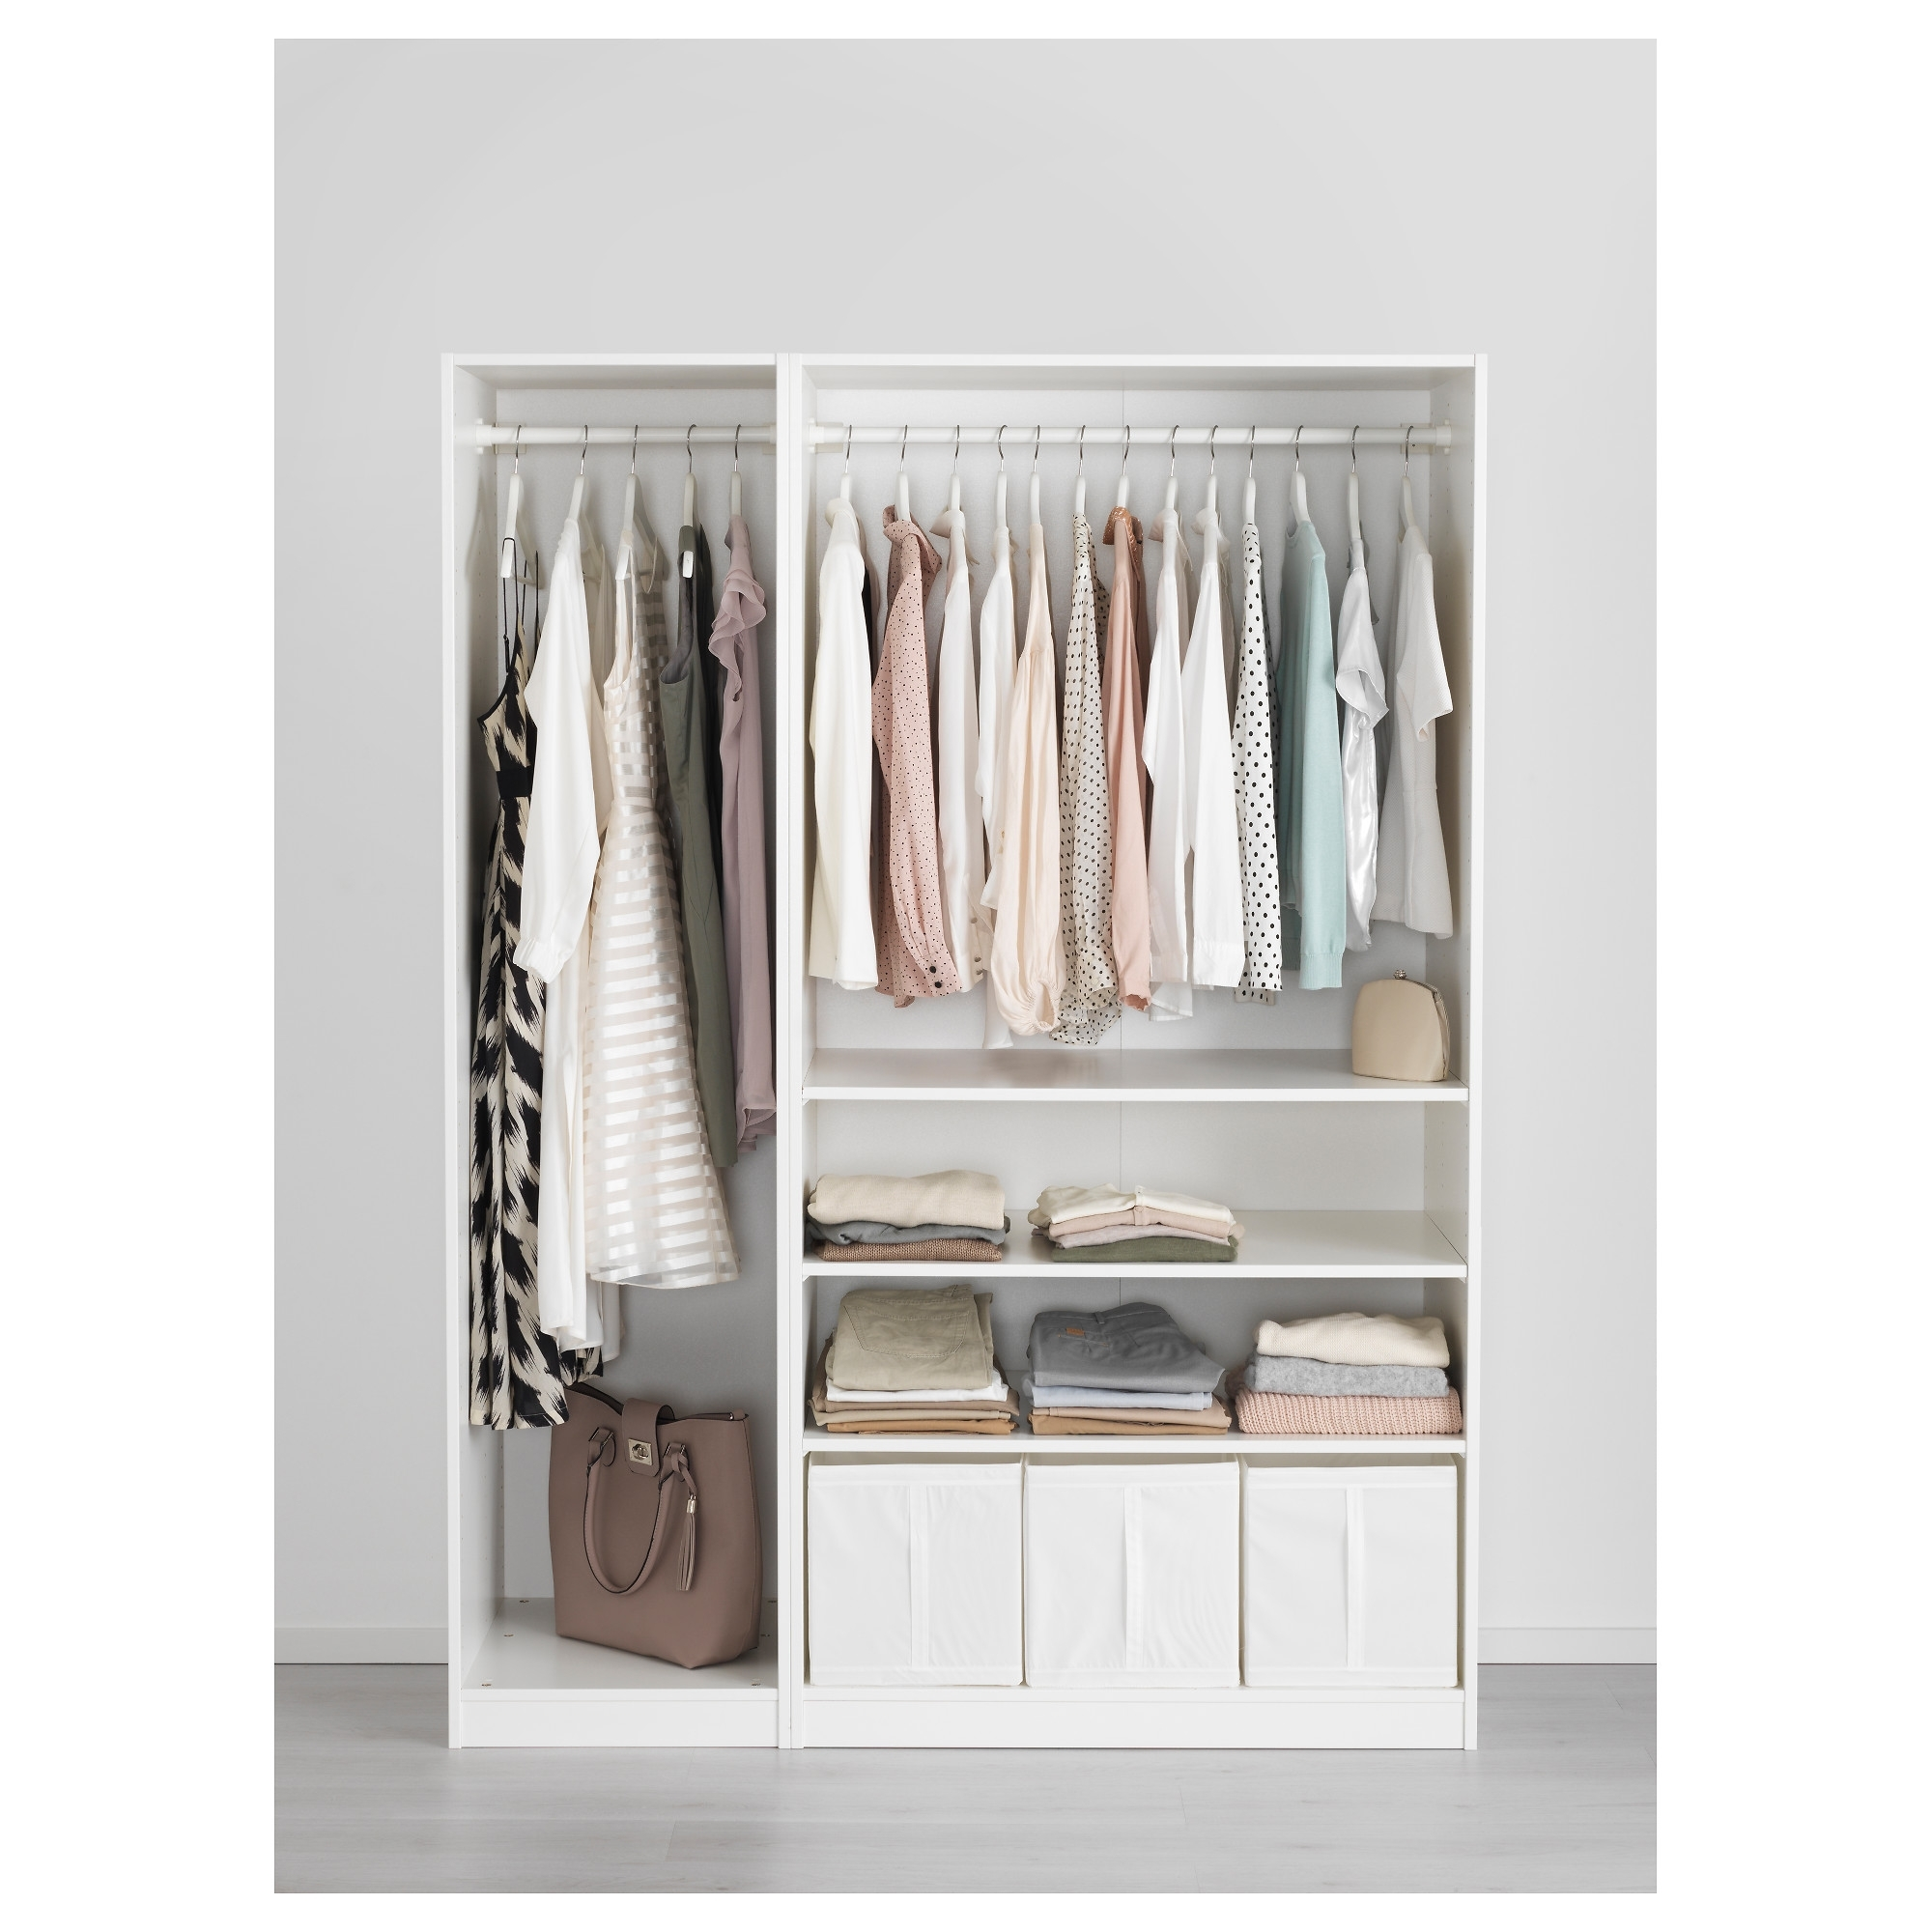 2017 Wardrobes White Gloss With Pax Wardrobe White/fardal High Gloss/light Green 150x60x201 Cm – Ikea (View 7 of 15)